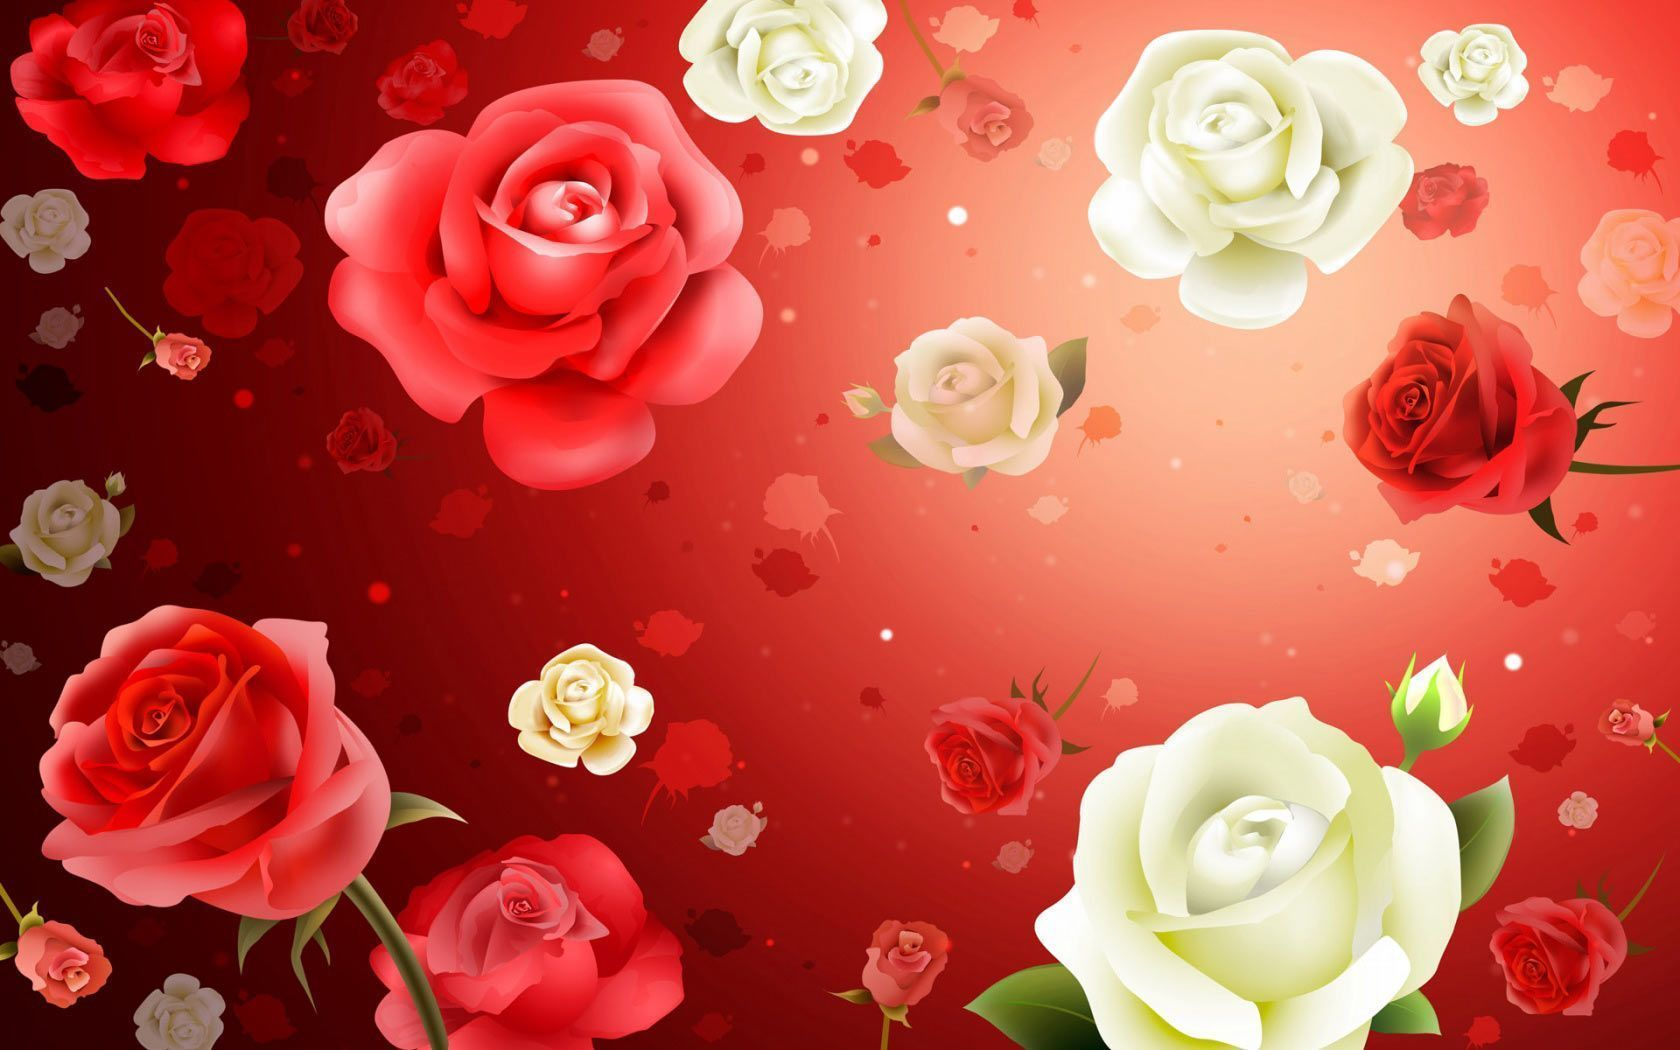 Rose Flower: Rose Flower Wallpaper